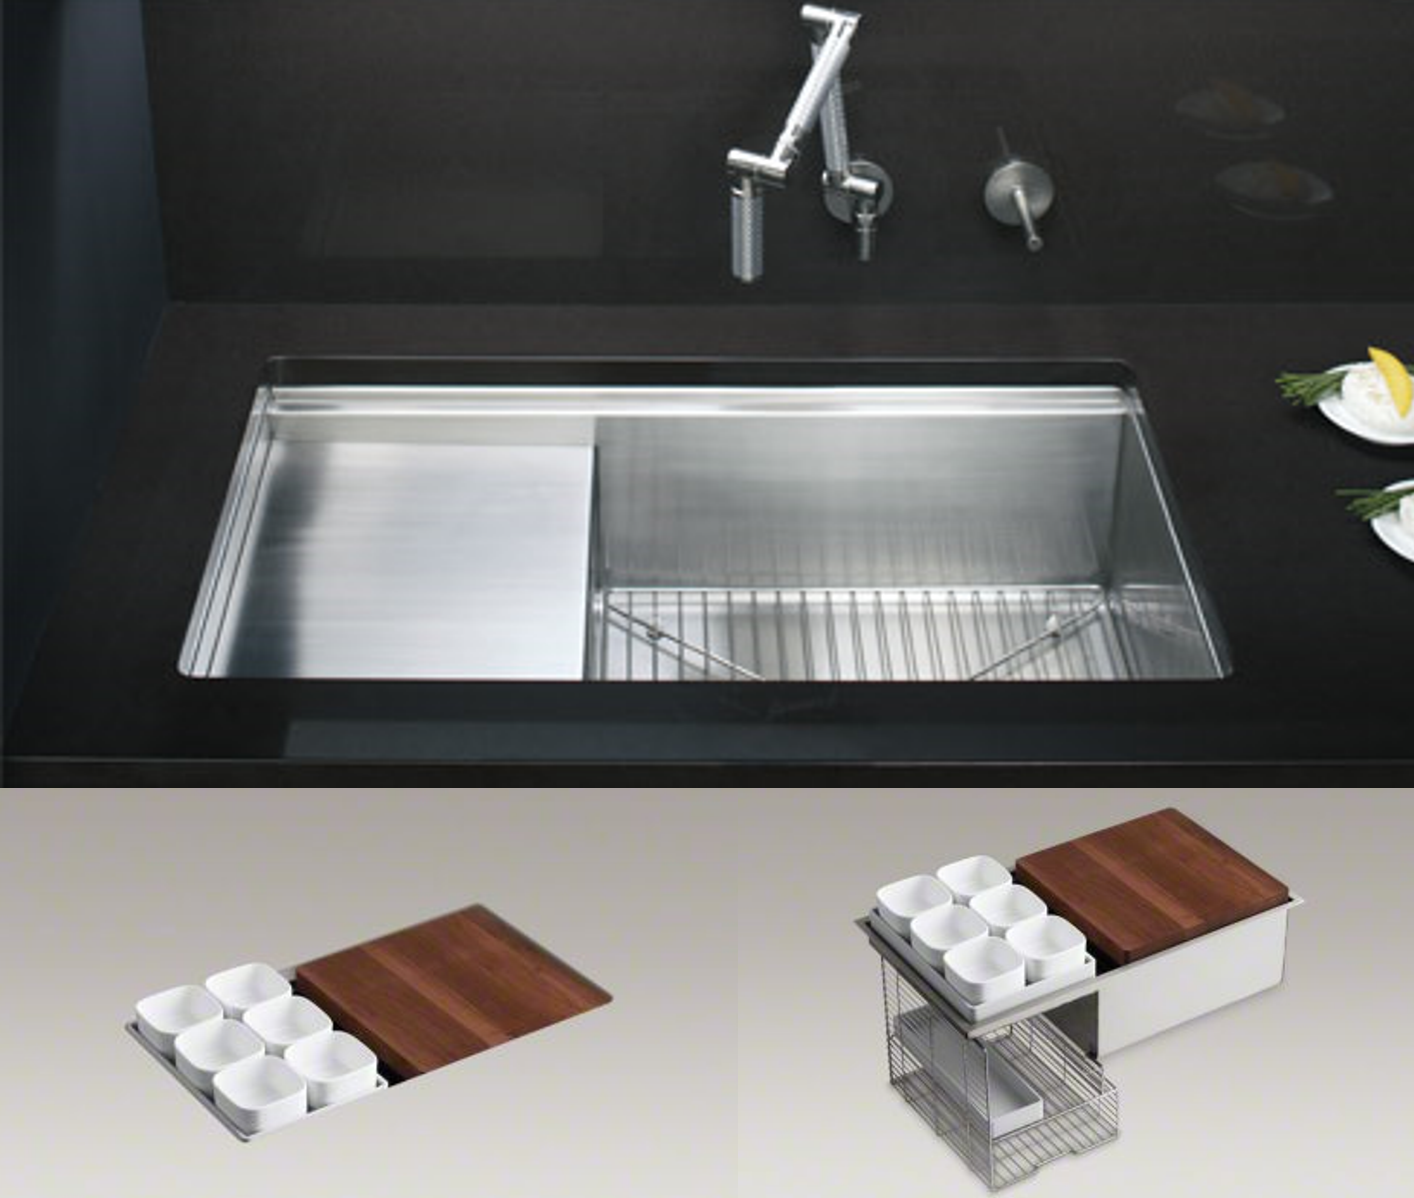 Integrated Kitchen kohler Sinks plus modern silver faucet on black countertop ideas